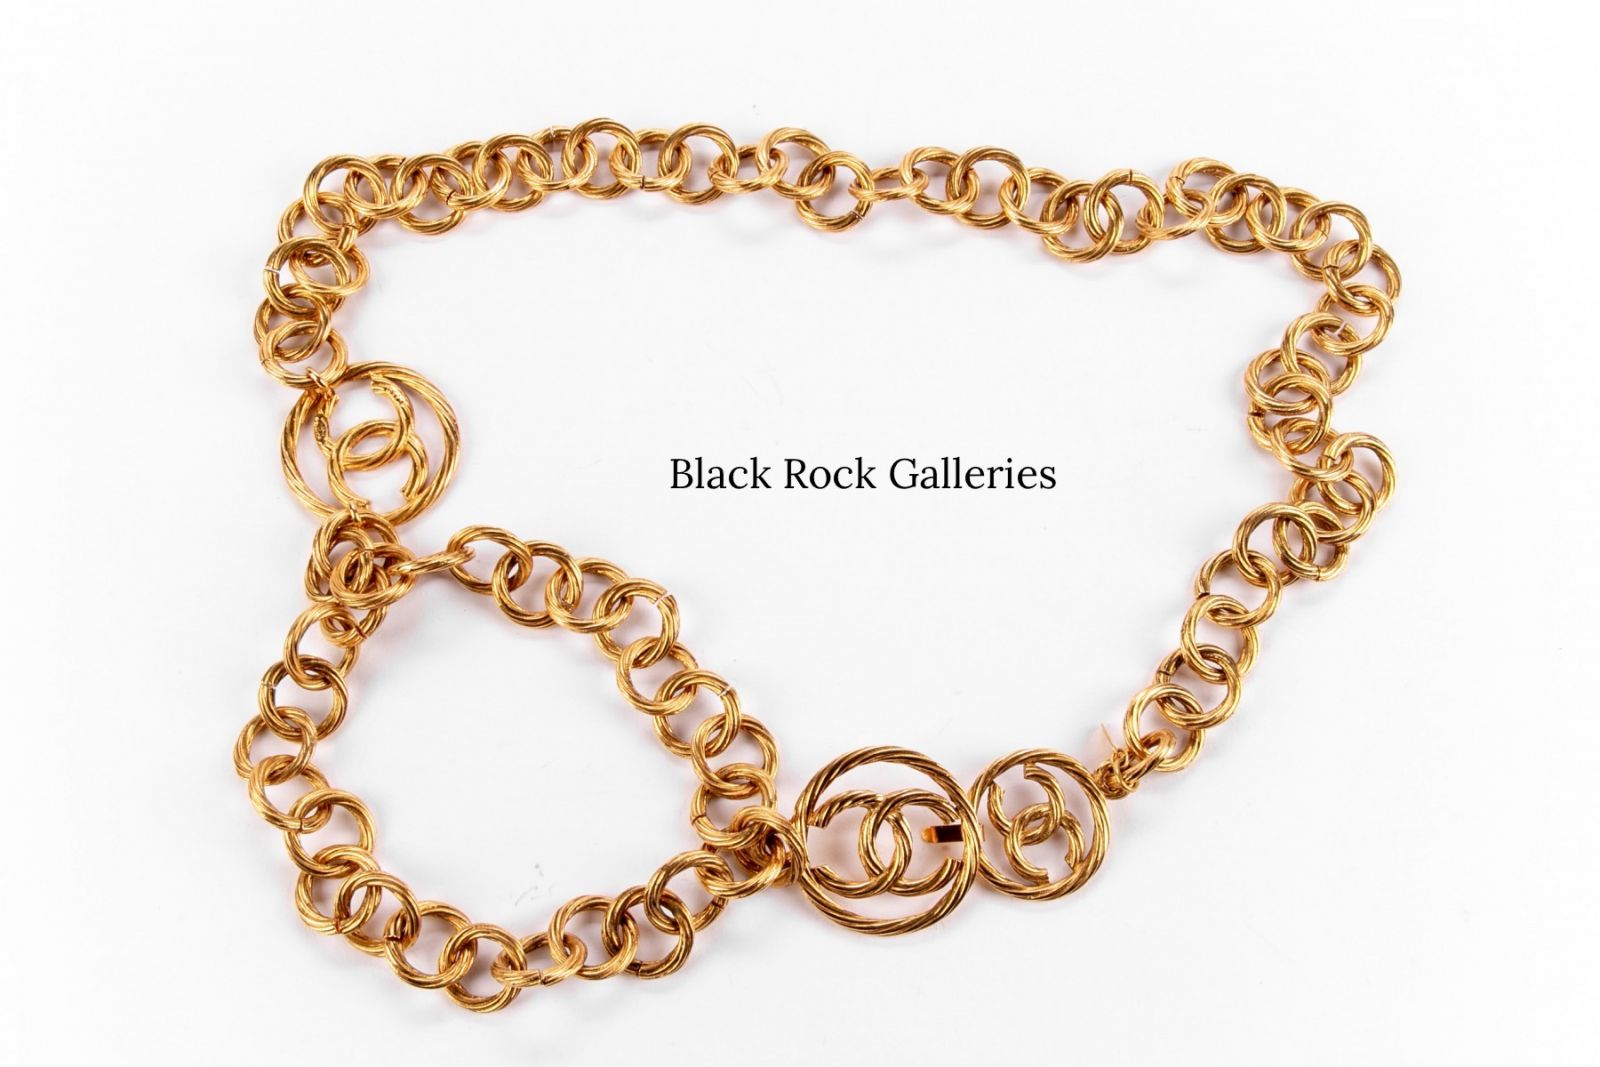 Classic Chanel chain belt with gold-tone